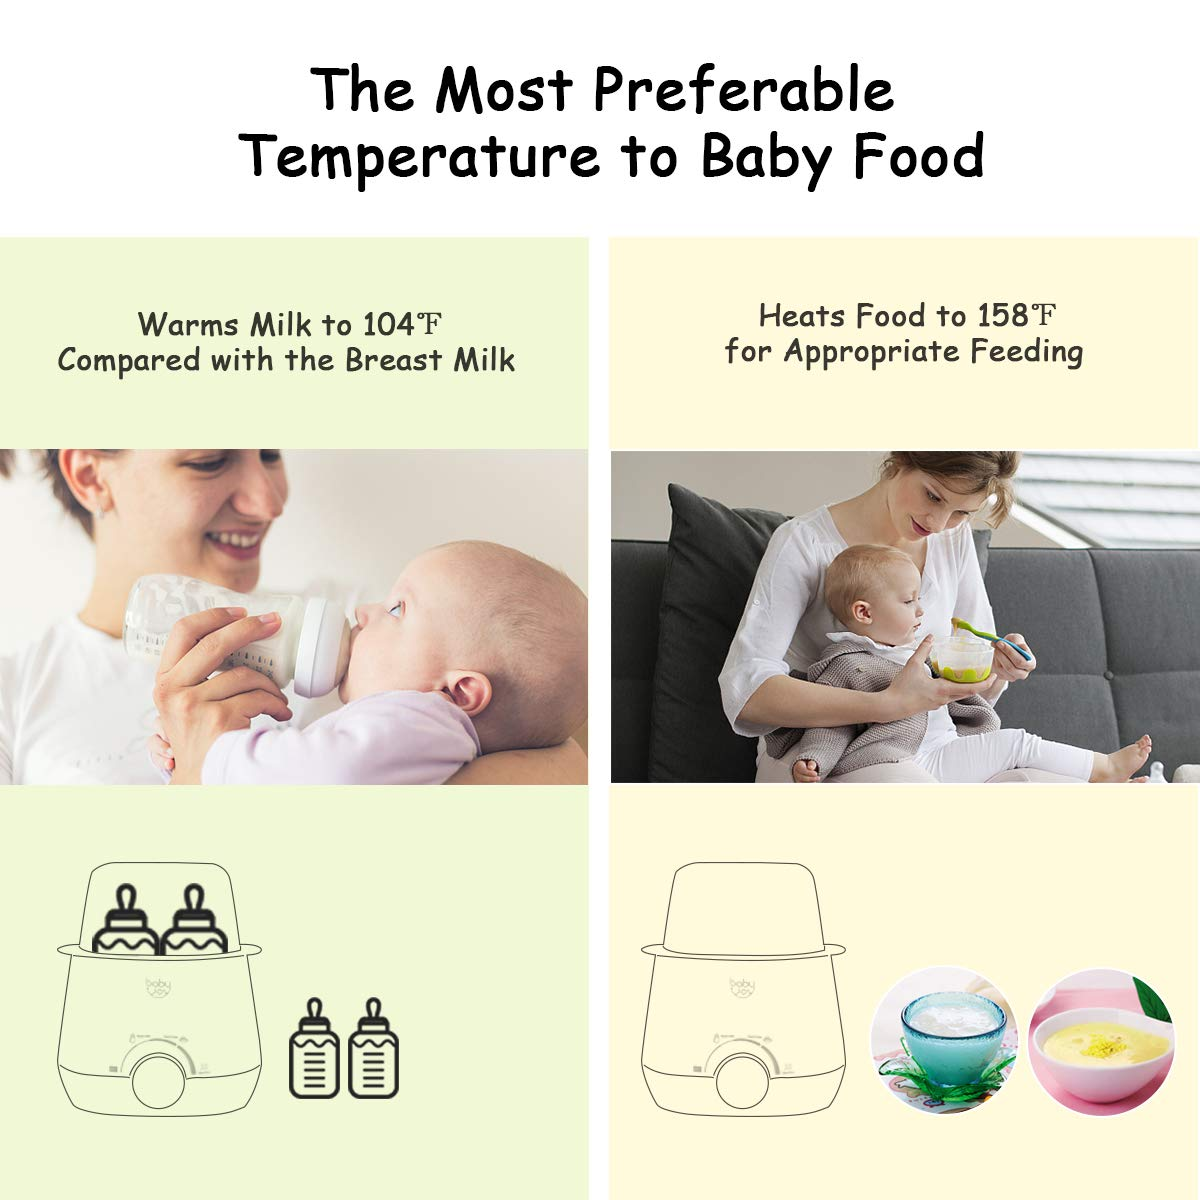 Baby Joy 3-in-1 Baby Bottle Warmer, Food Warmer, Steam Sterilizer, Portable Warming Breast Milk, Double Bottles Warmer with Accurate Temperature Control, Dry-Fire Protection by Baby & Joy (Image #2)